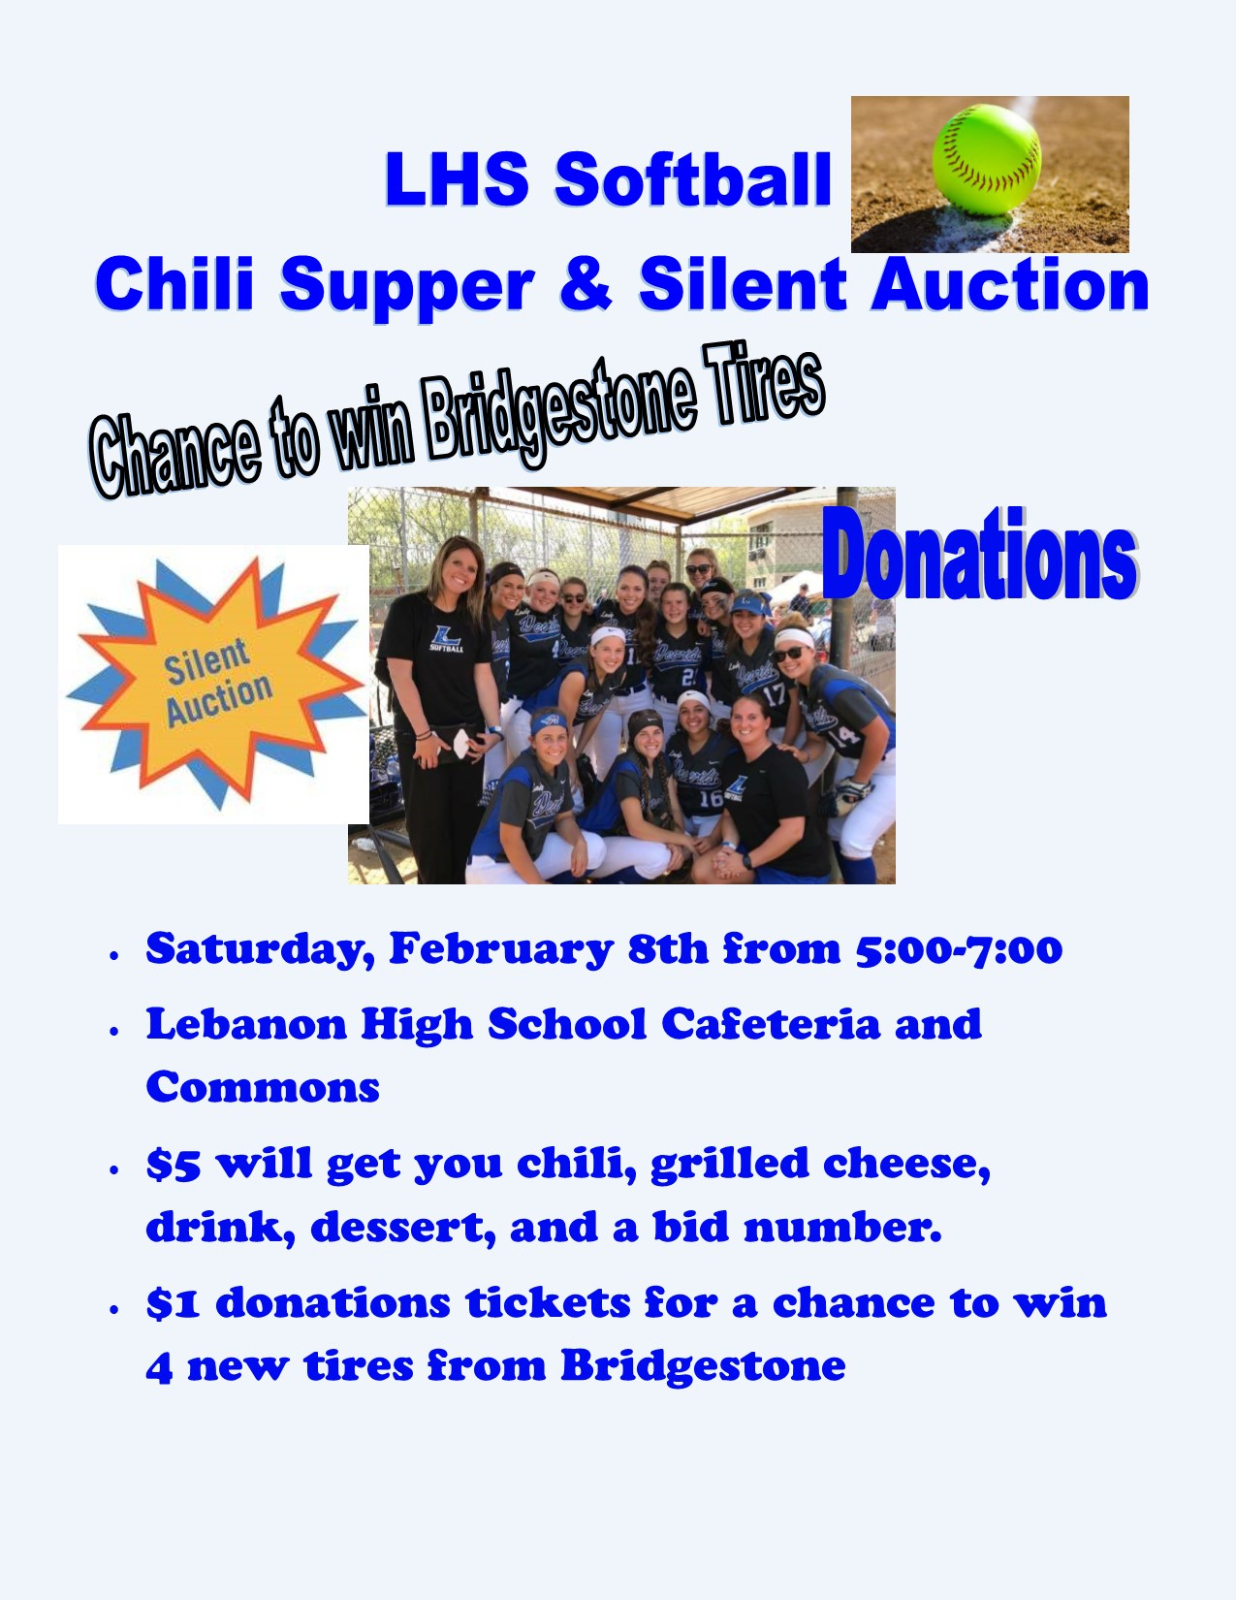 Softball Chili Supper and Silent Auction Fundraiser February 8th